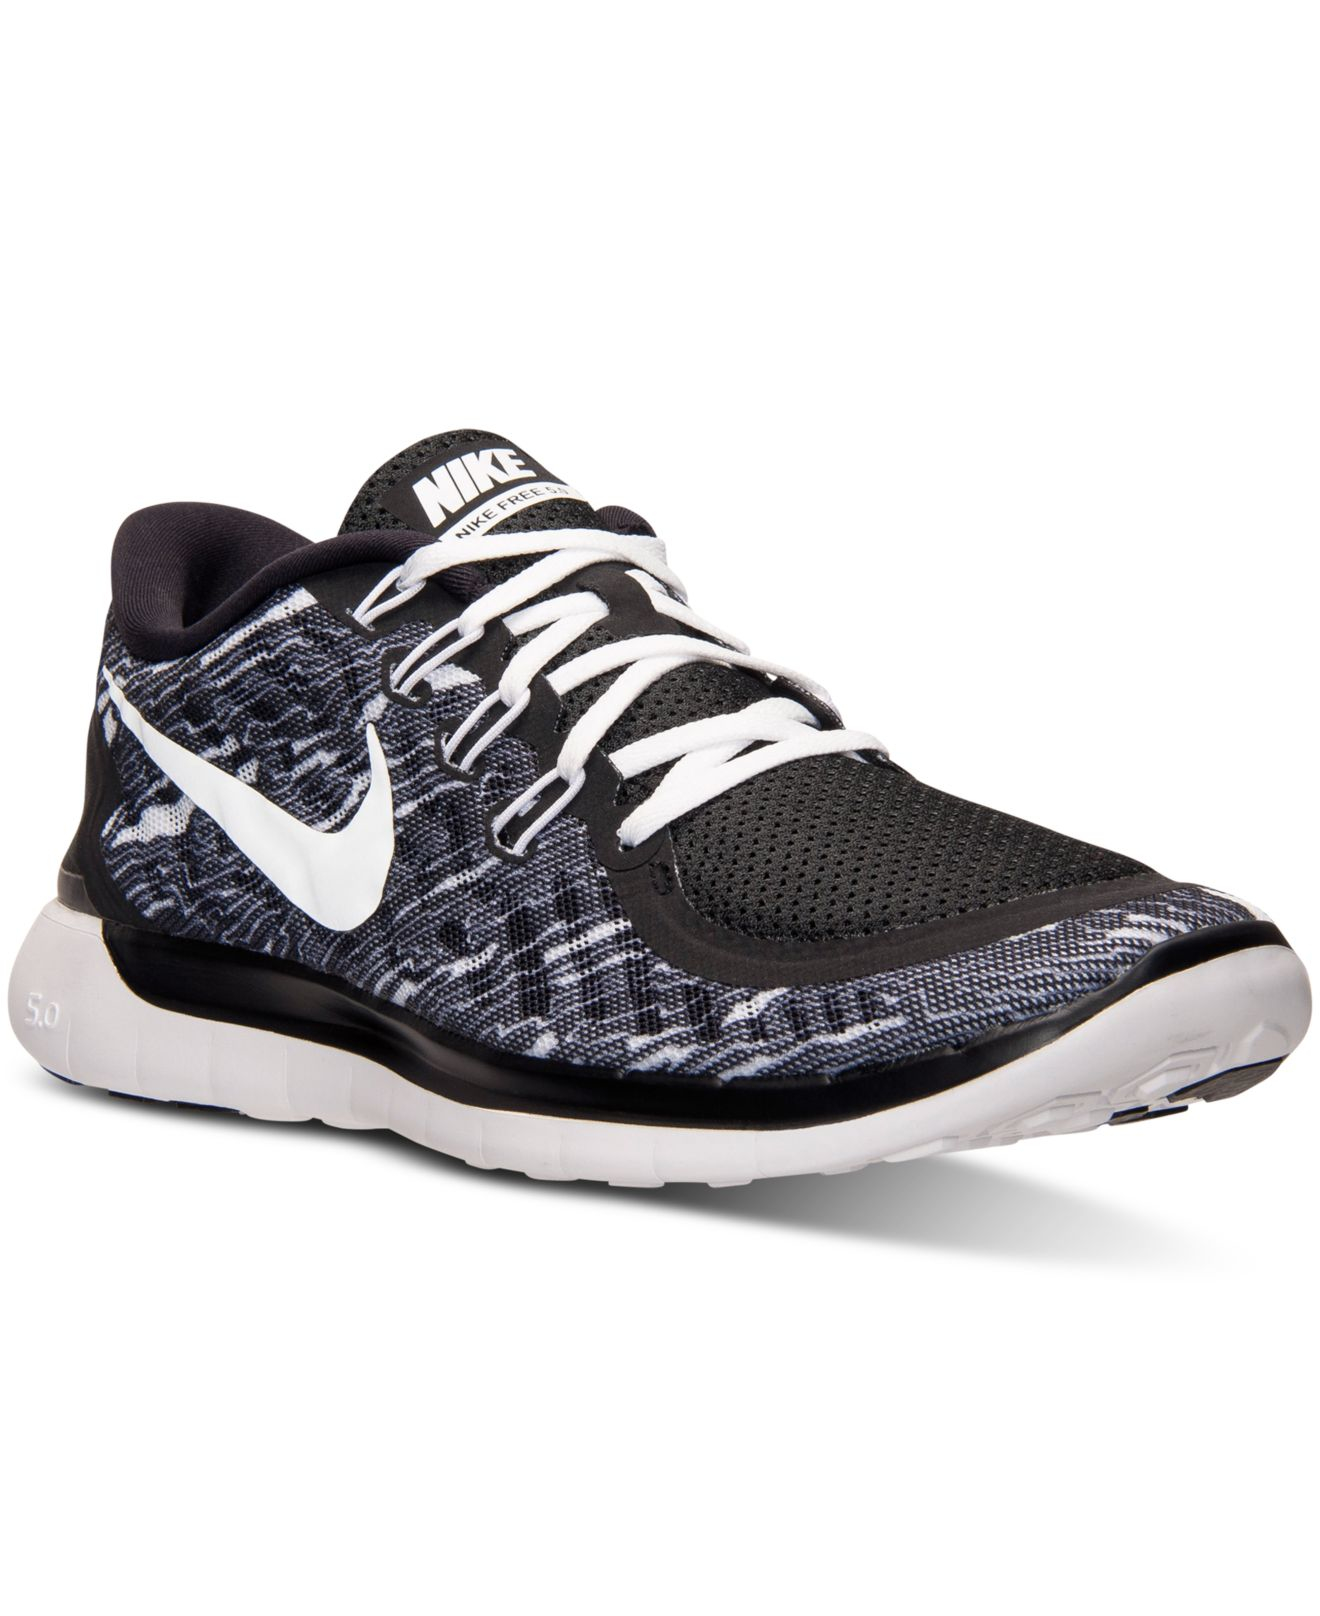 best service bcec7 a882f ... finish line nike free run 5.0  gallery. previously sold at macys ...